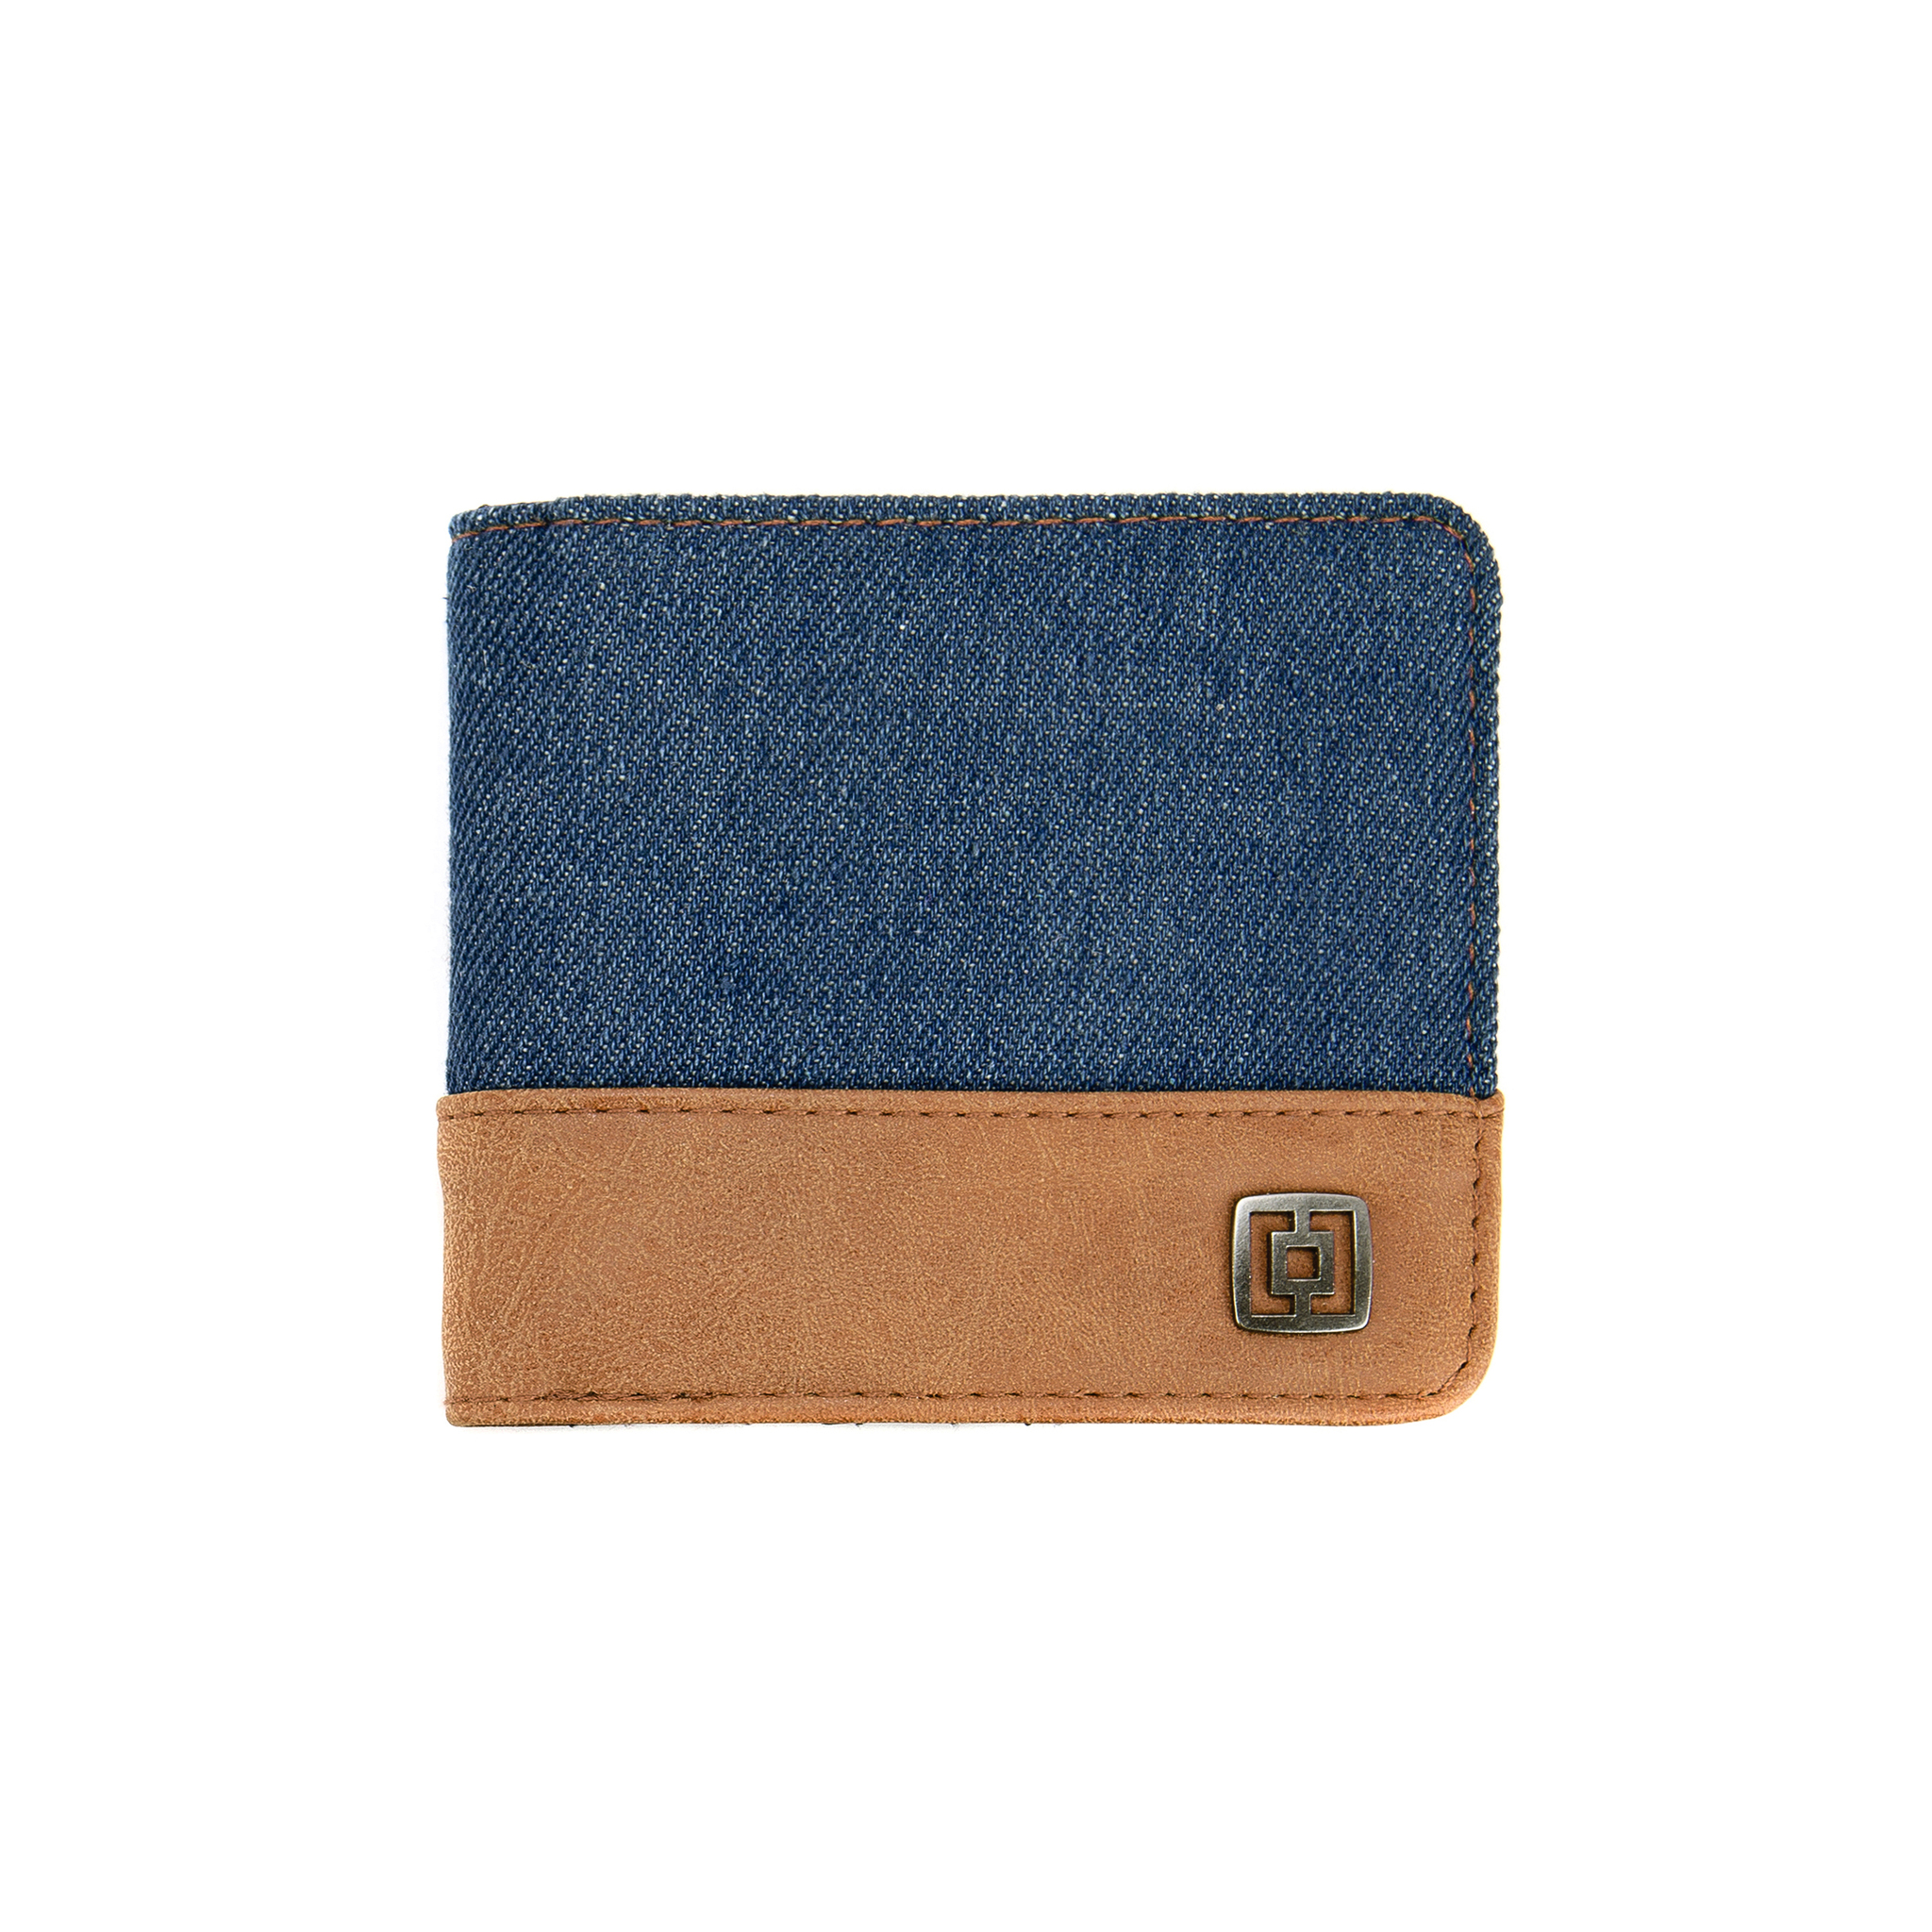 Кошелек Horsefeathers TERRY WALLET denim